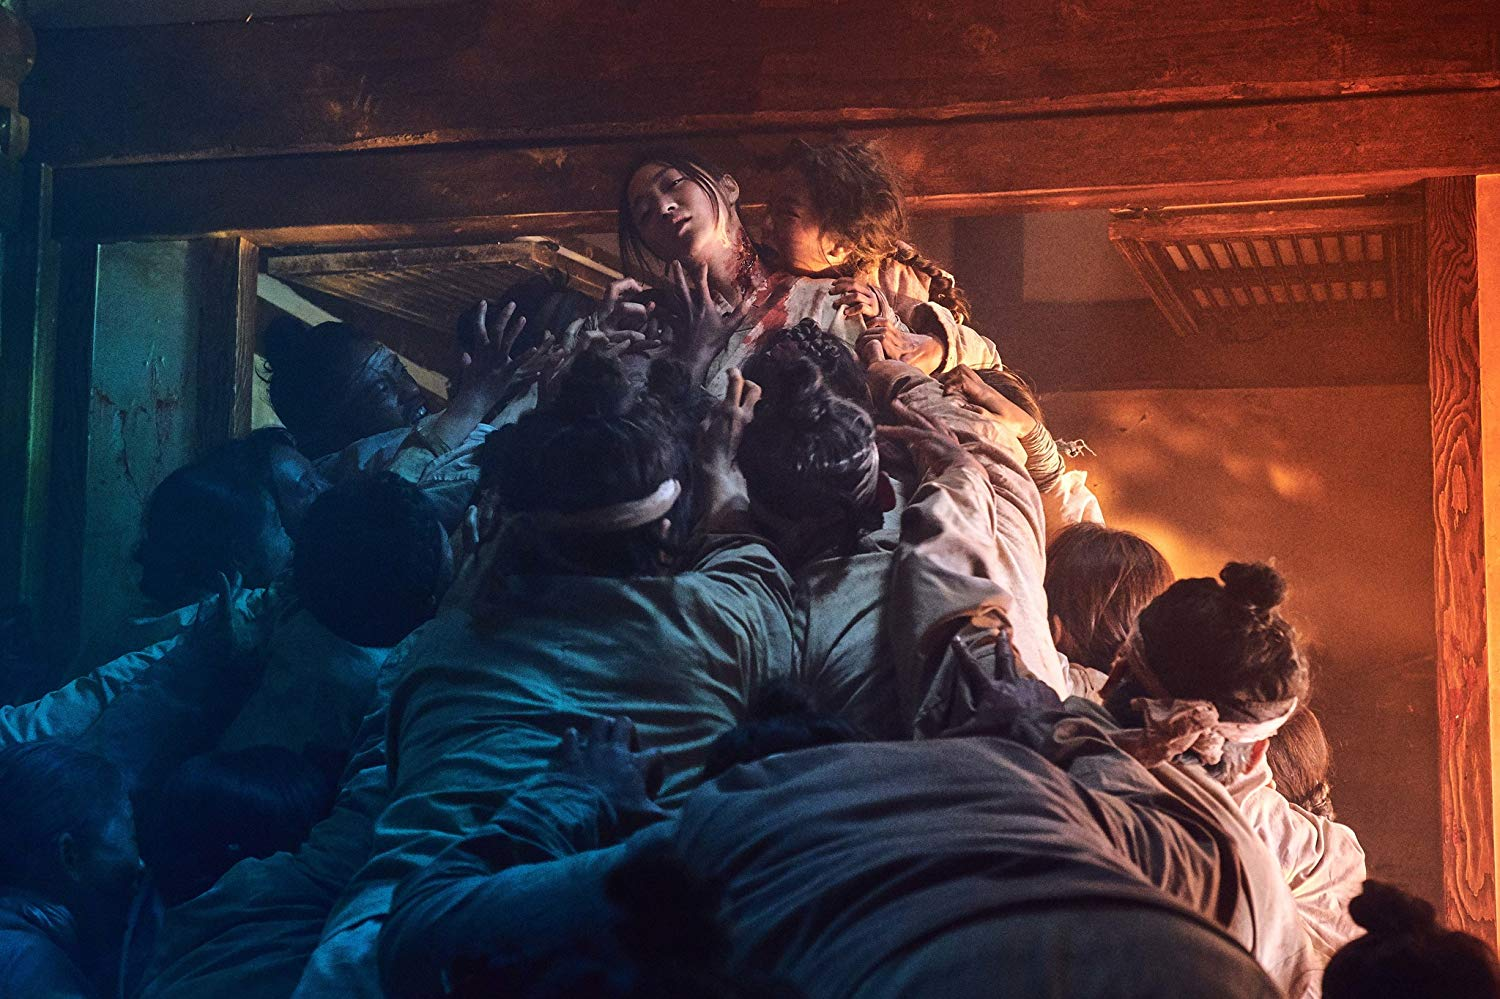 Kingdom, femme se faisant dévorer par des morts vivants #kingdom #series #netflix #korea #middleagekorea #undeadseries #horrorseries #asiancinema